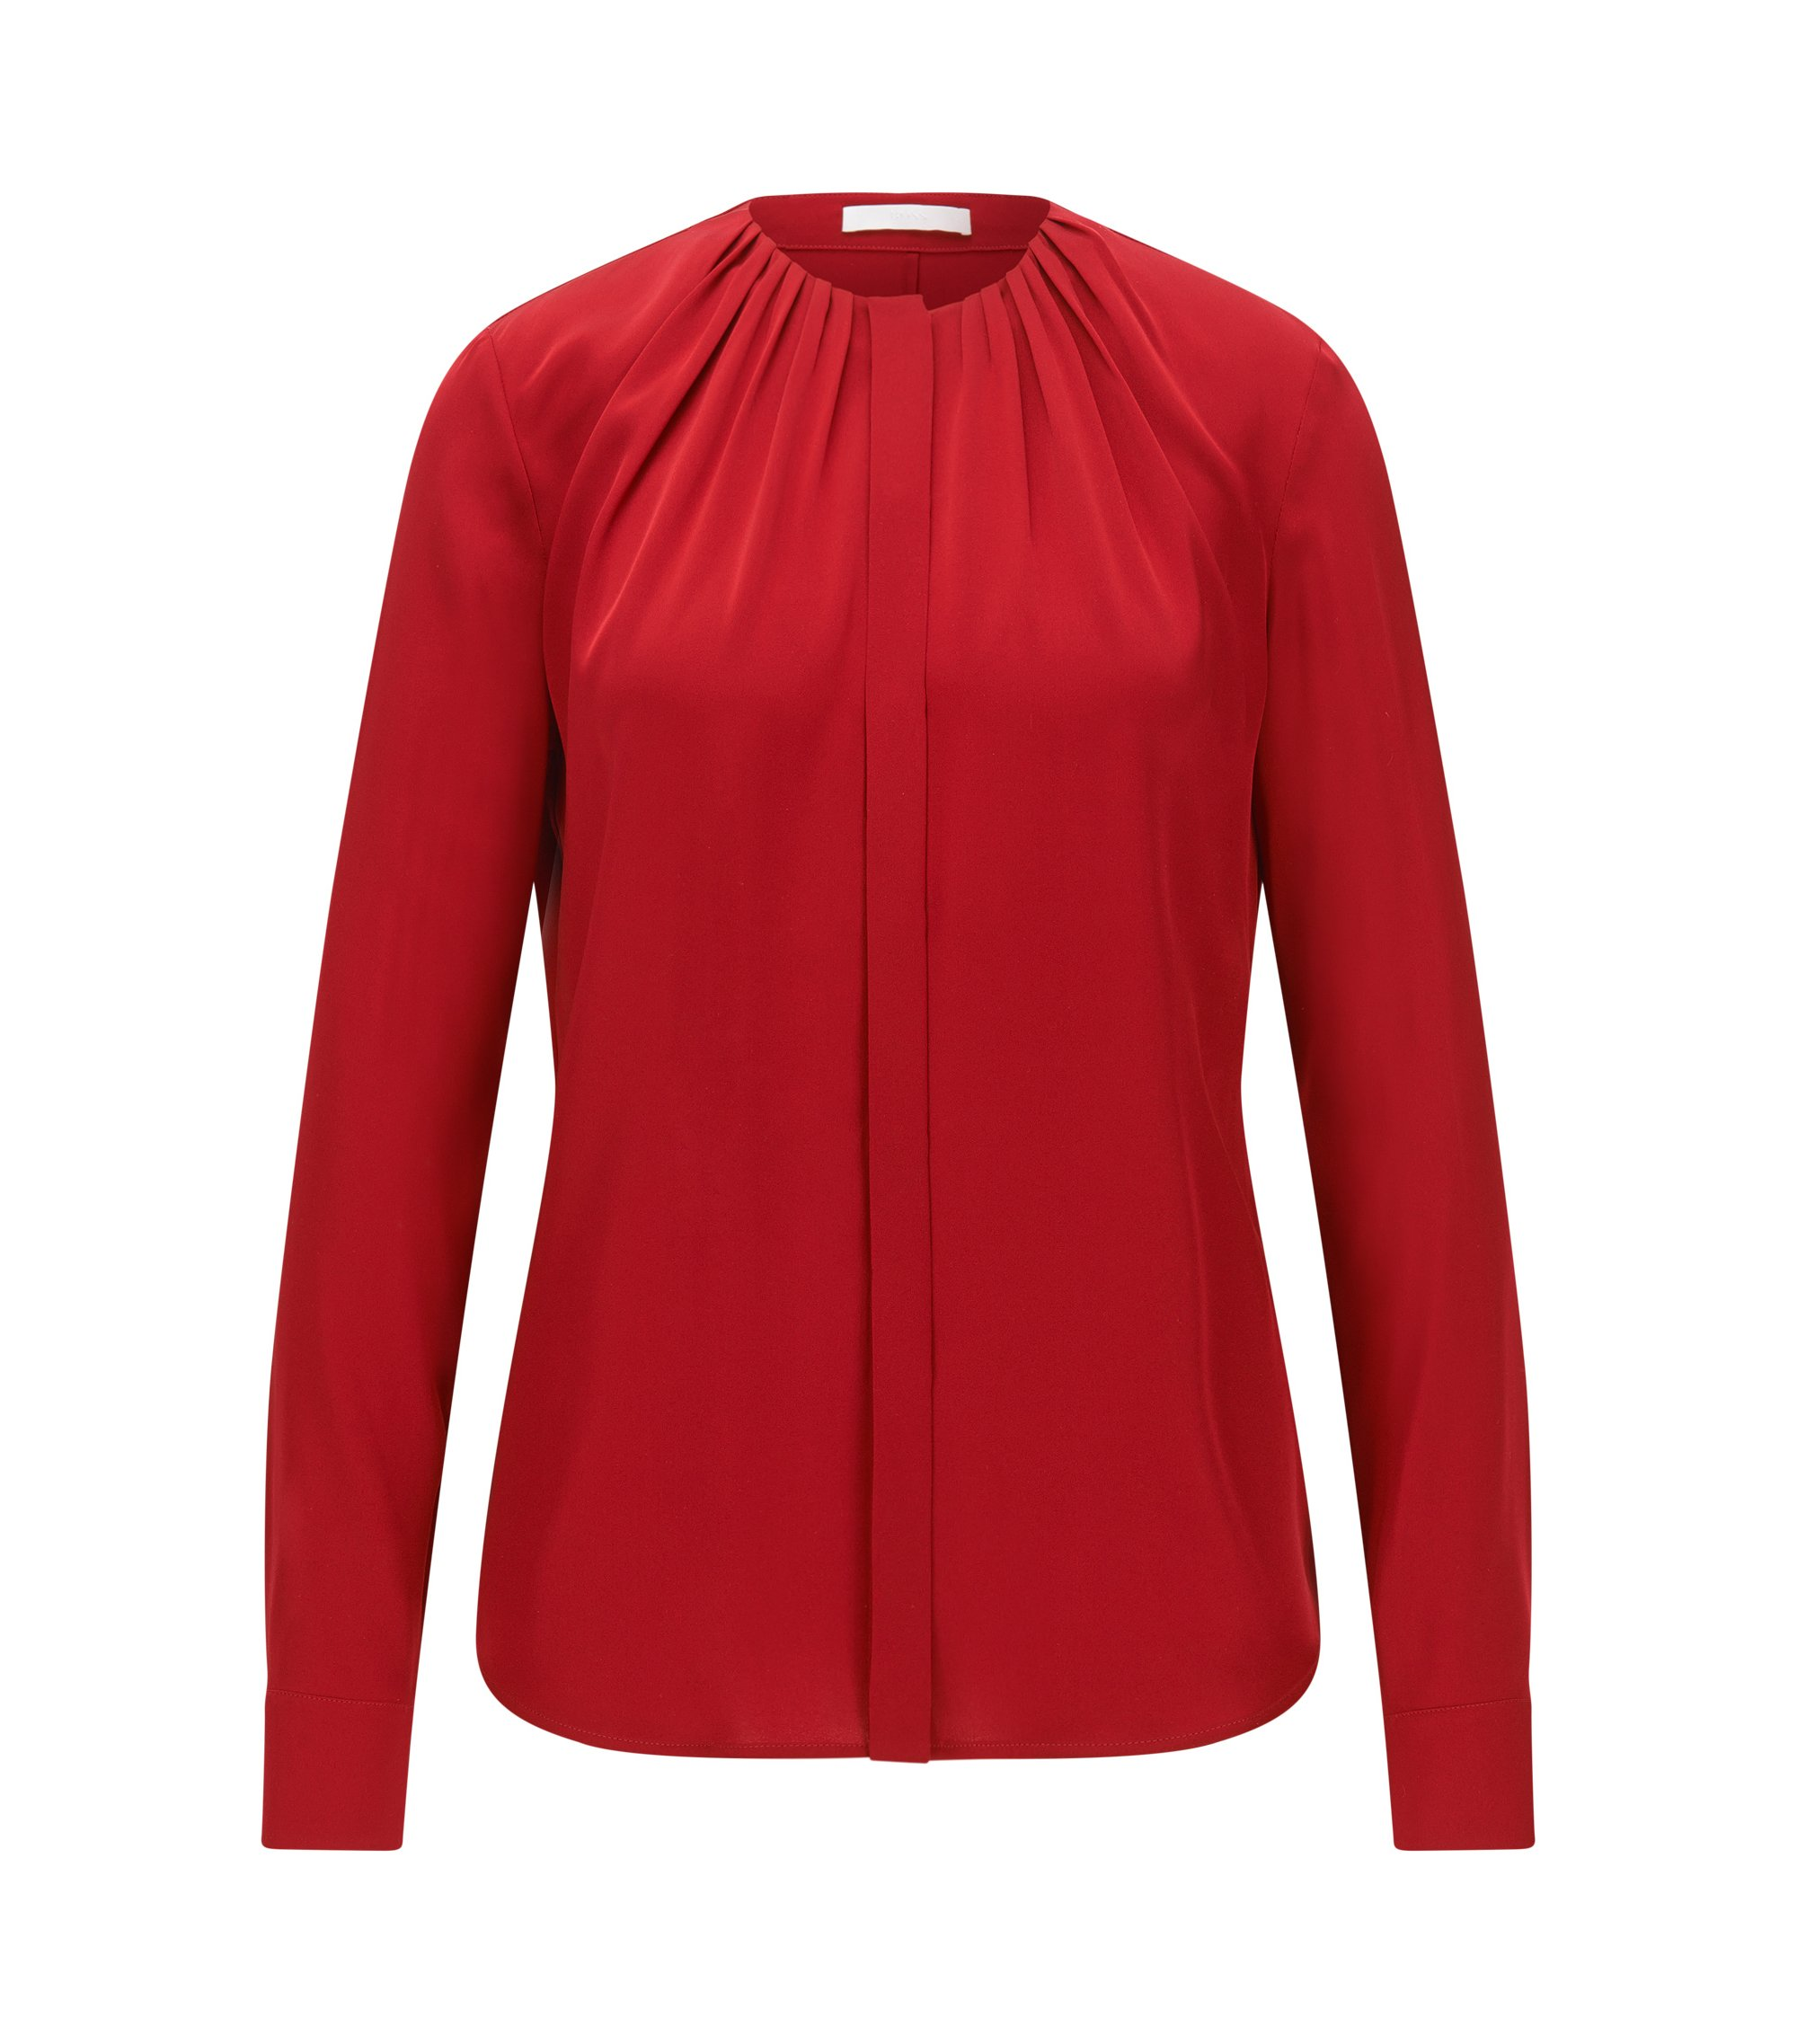 Silk-blend blouse with gathered neckline, Red